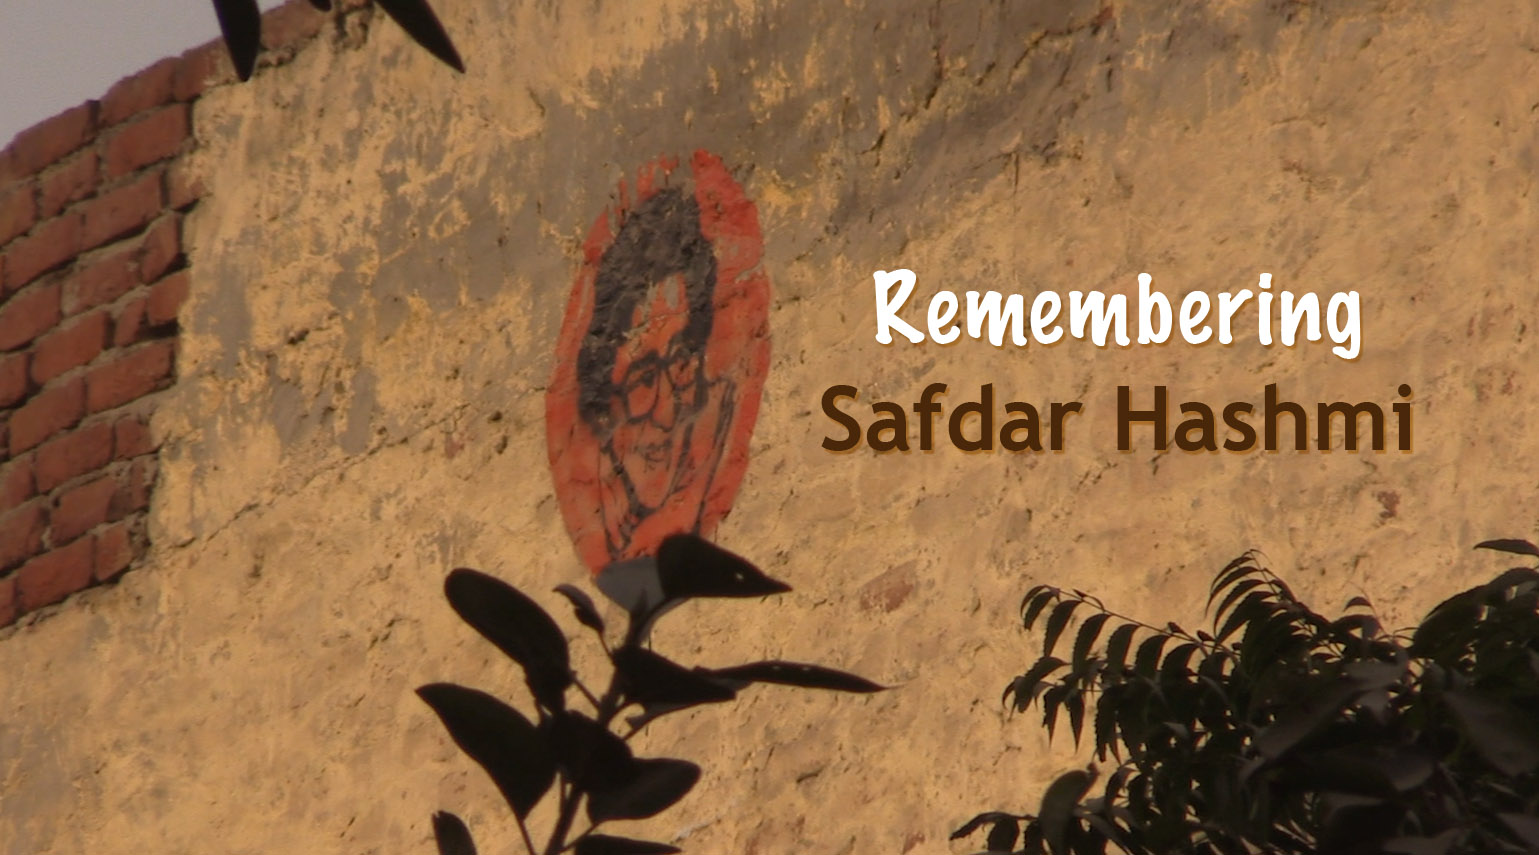 Remembering Safdar Hashmi (12 April 1954 – 2 January 1989)